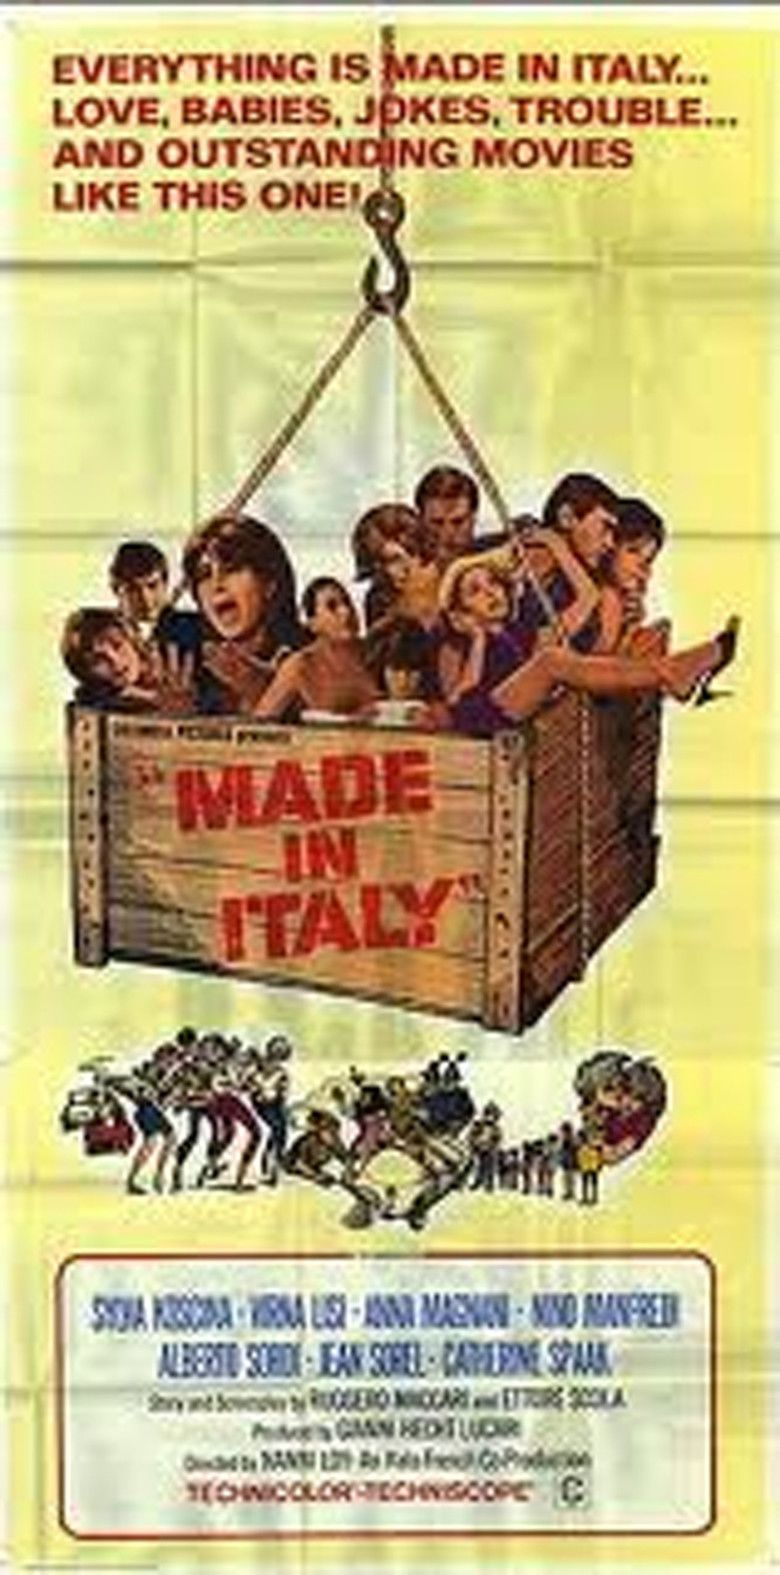 Made in Italy (film) movie poster